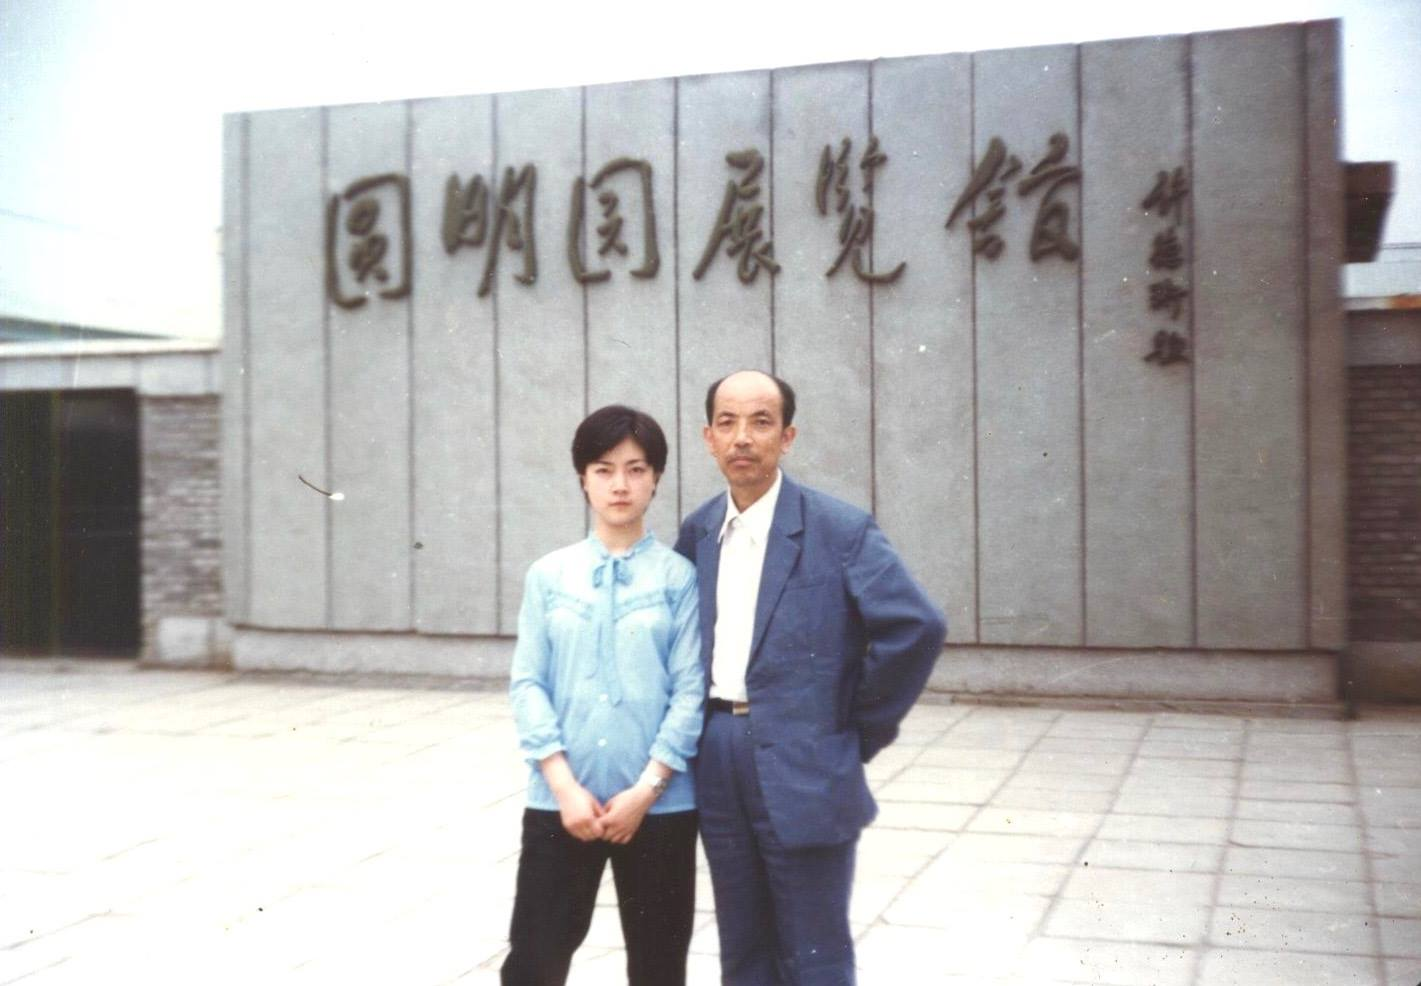 This photo of my father and me was taken in Yuanming Yuan (Old Summer Palace) in Beijing when I was a graduate student. 父親在我上研究生期間,曾到北京看望我。此照片攝於圓明園。